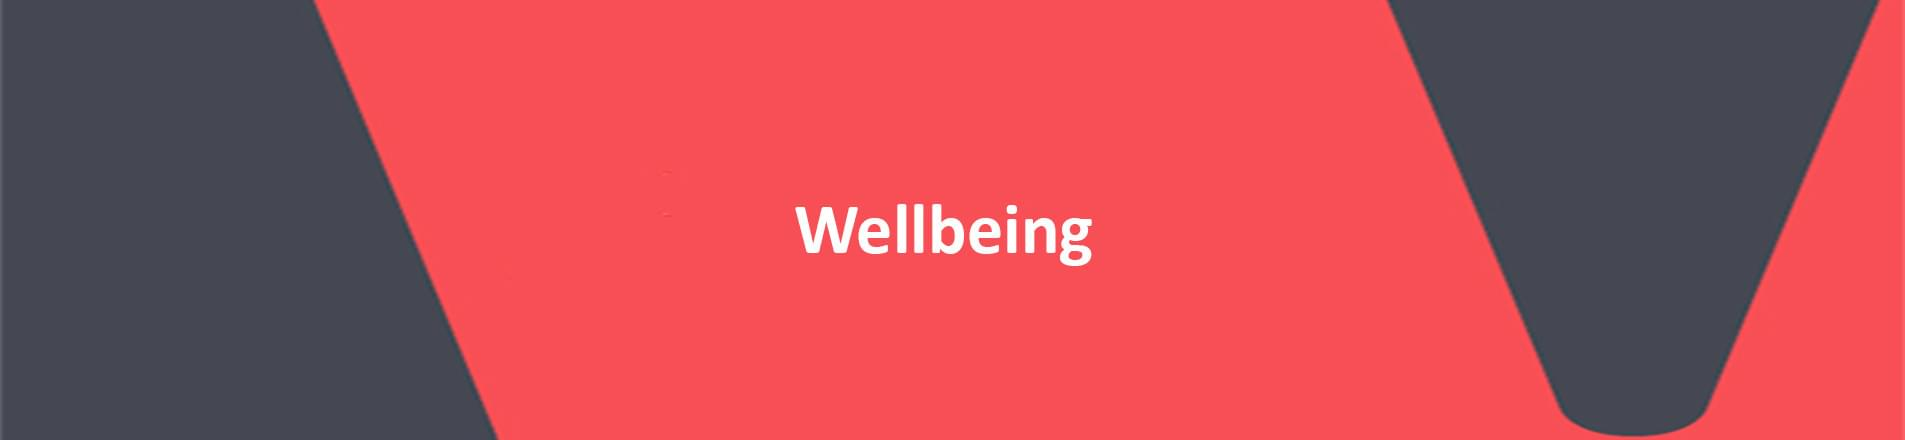 "Image VERCIDA banner.  Red background with the word ""Wellbeing"" spelled in white letters."